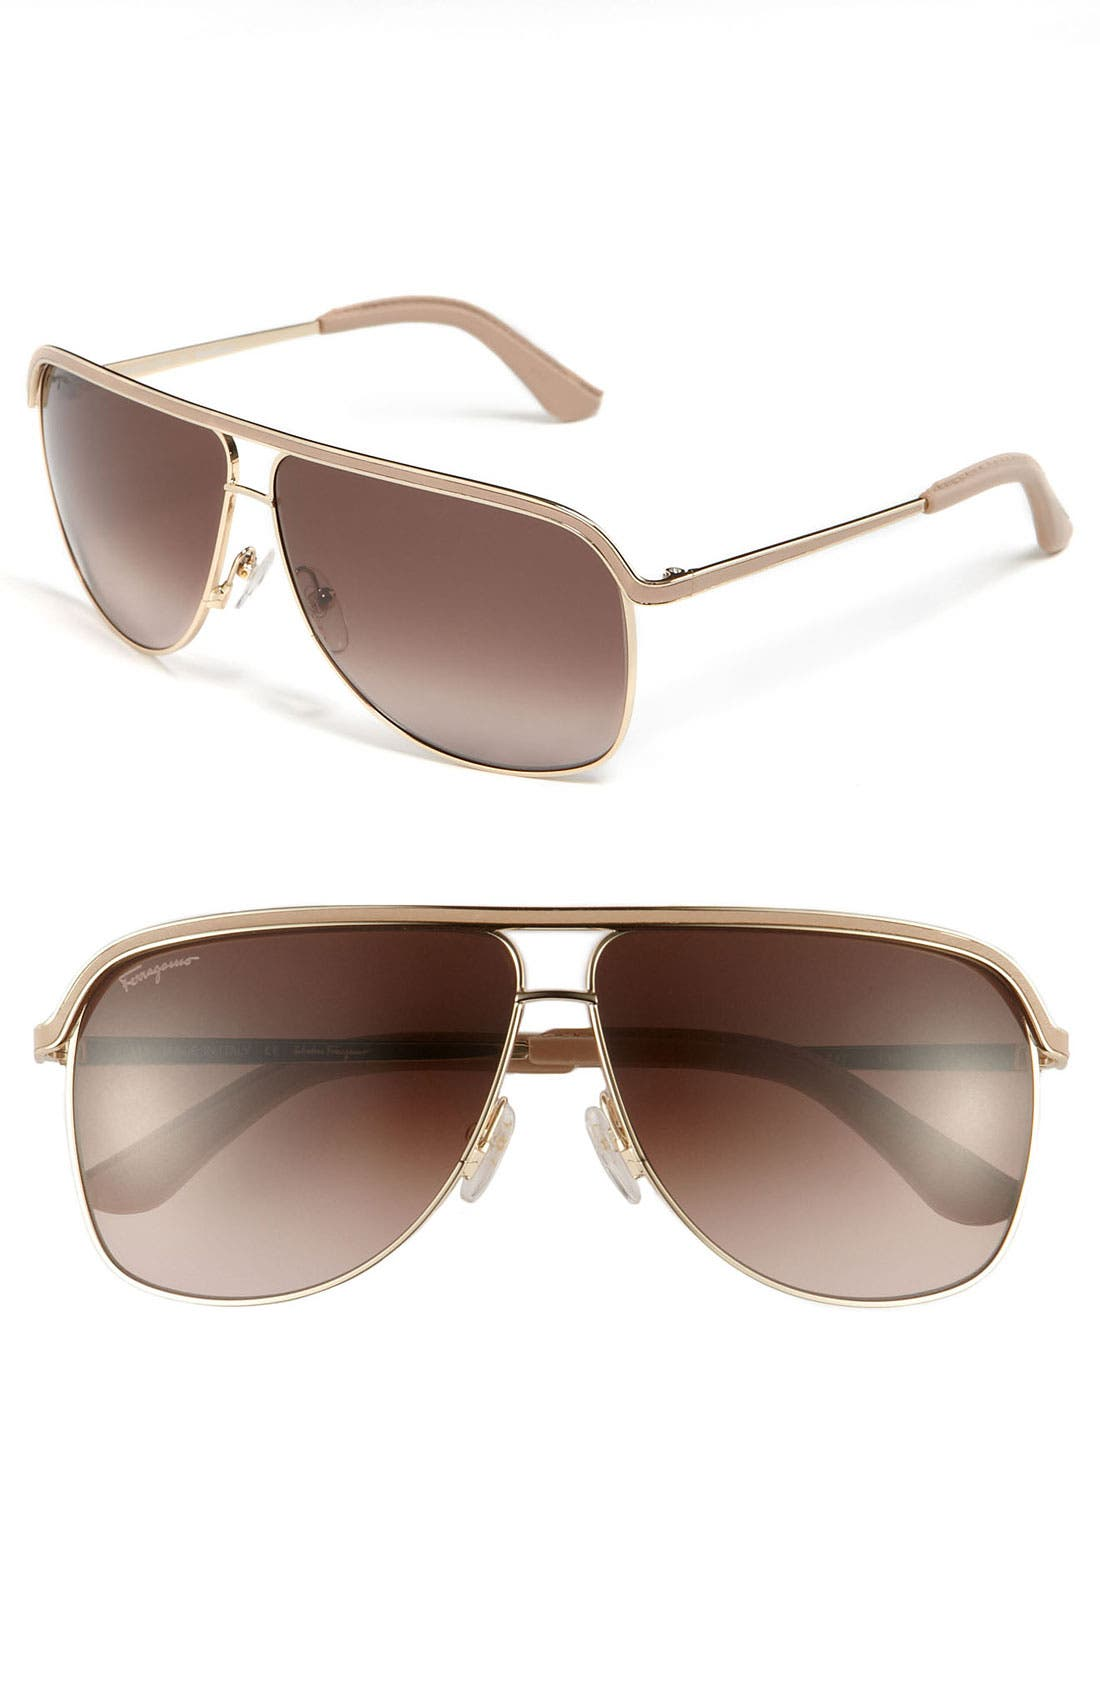 Alternate Image 1 Selected - Salvatore Ferragamo 62mm Aviator Sunglasses